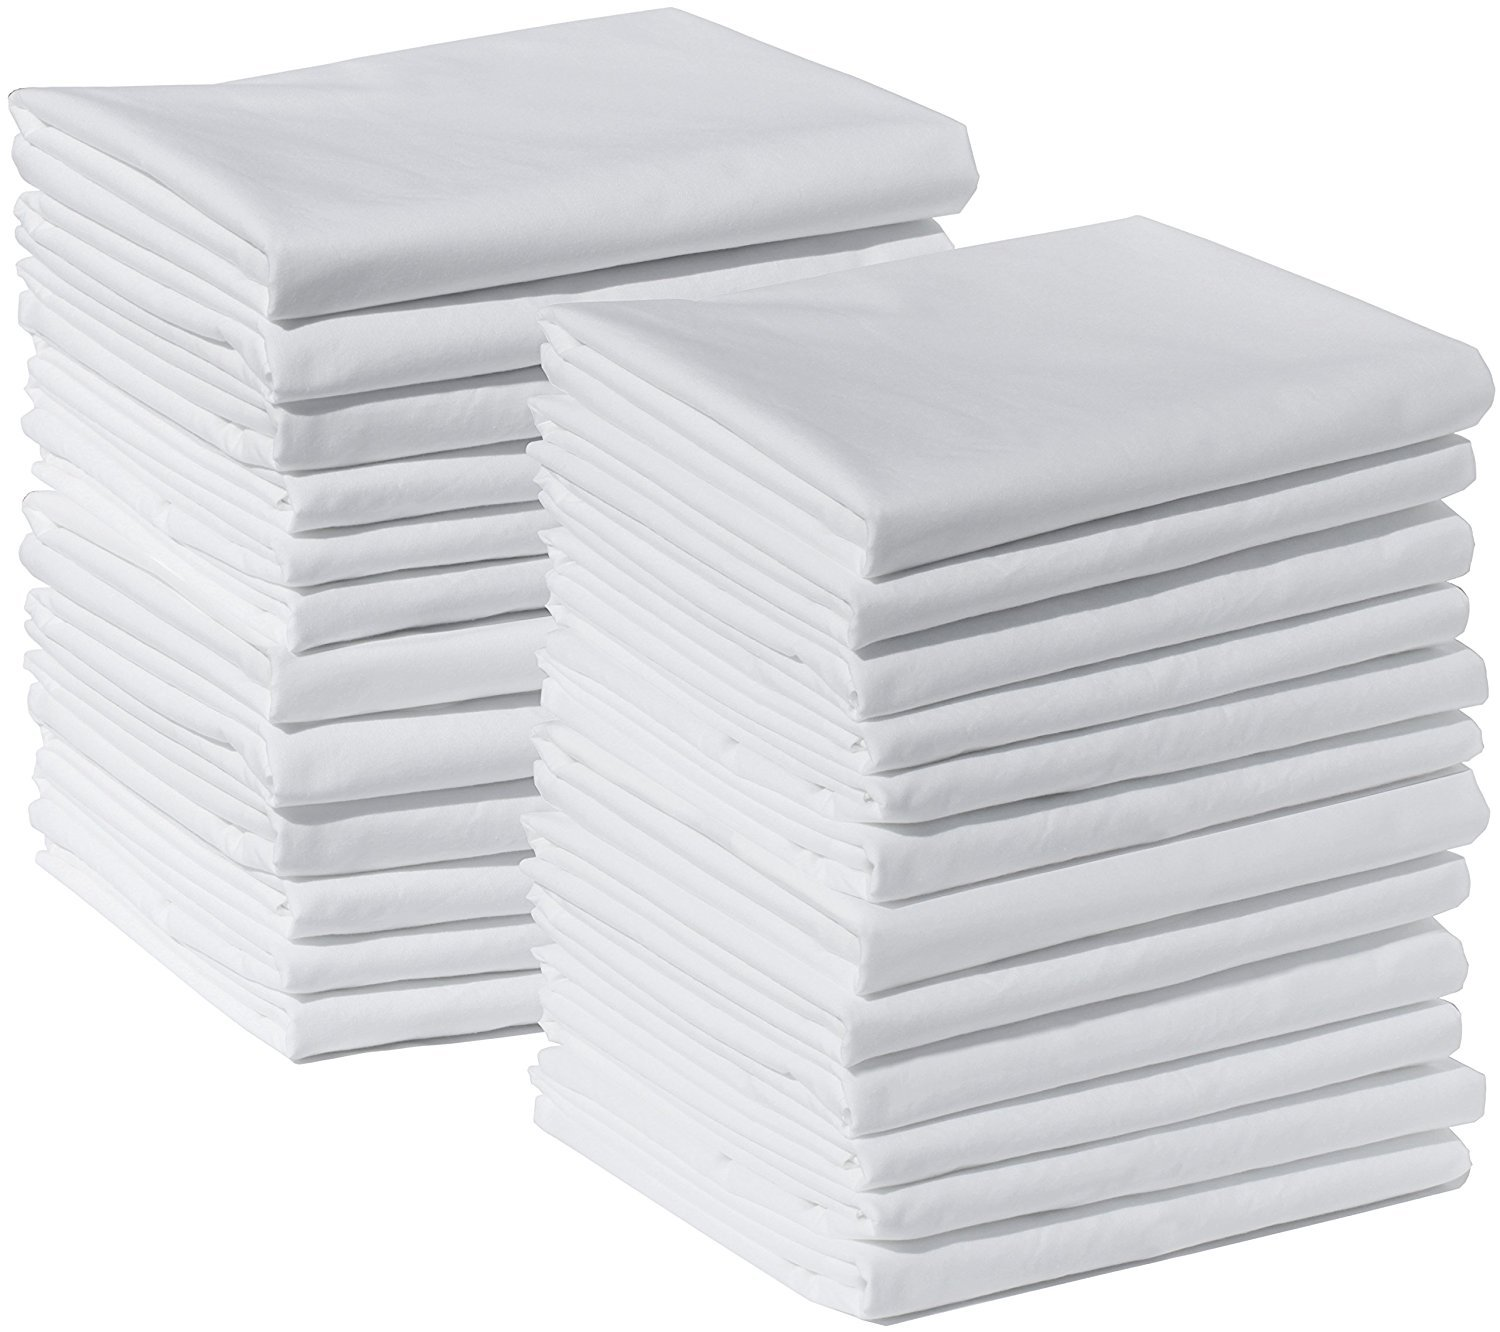 Bulk Pack of 24 King Size Pillowcases, White 300 Thread Count, 20''x40'' Solid White 2 Dozen, Perfect for Physical Therapy Clinics, Hotels, Camps by Arihant Bedding (Image #1)